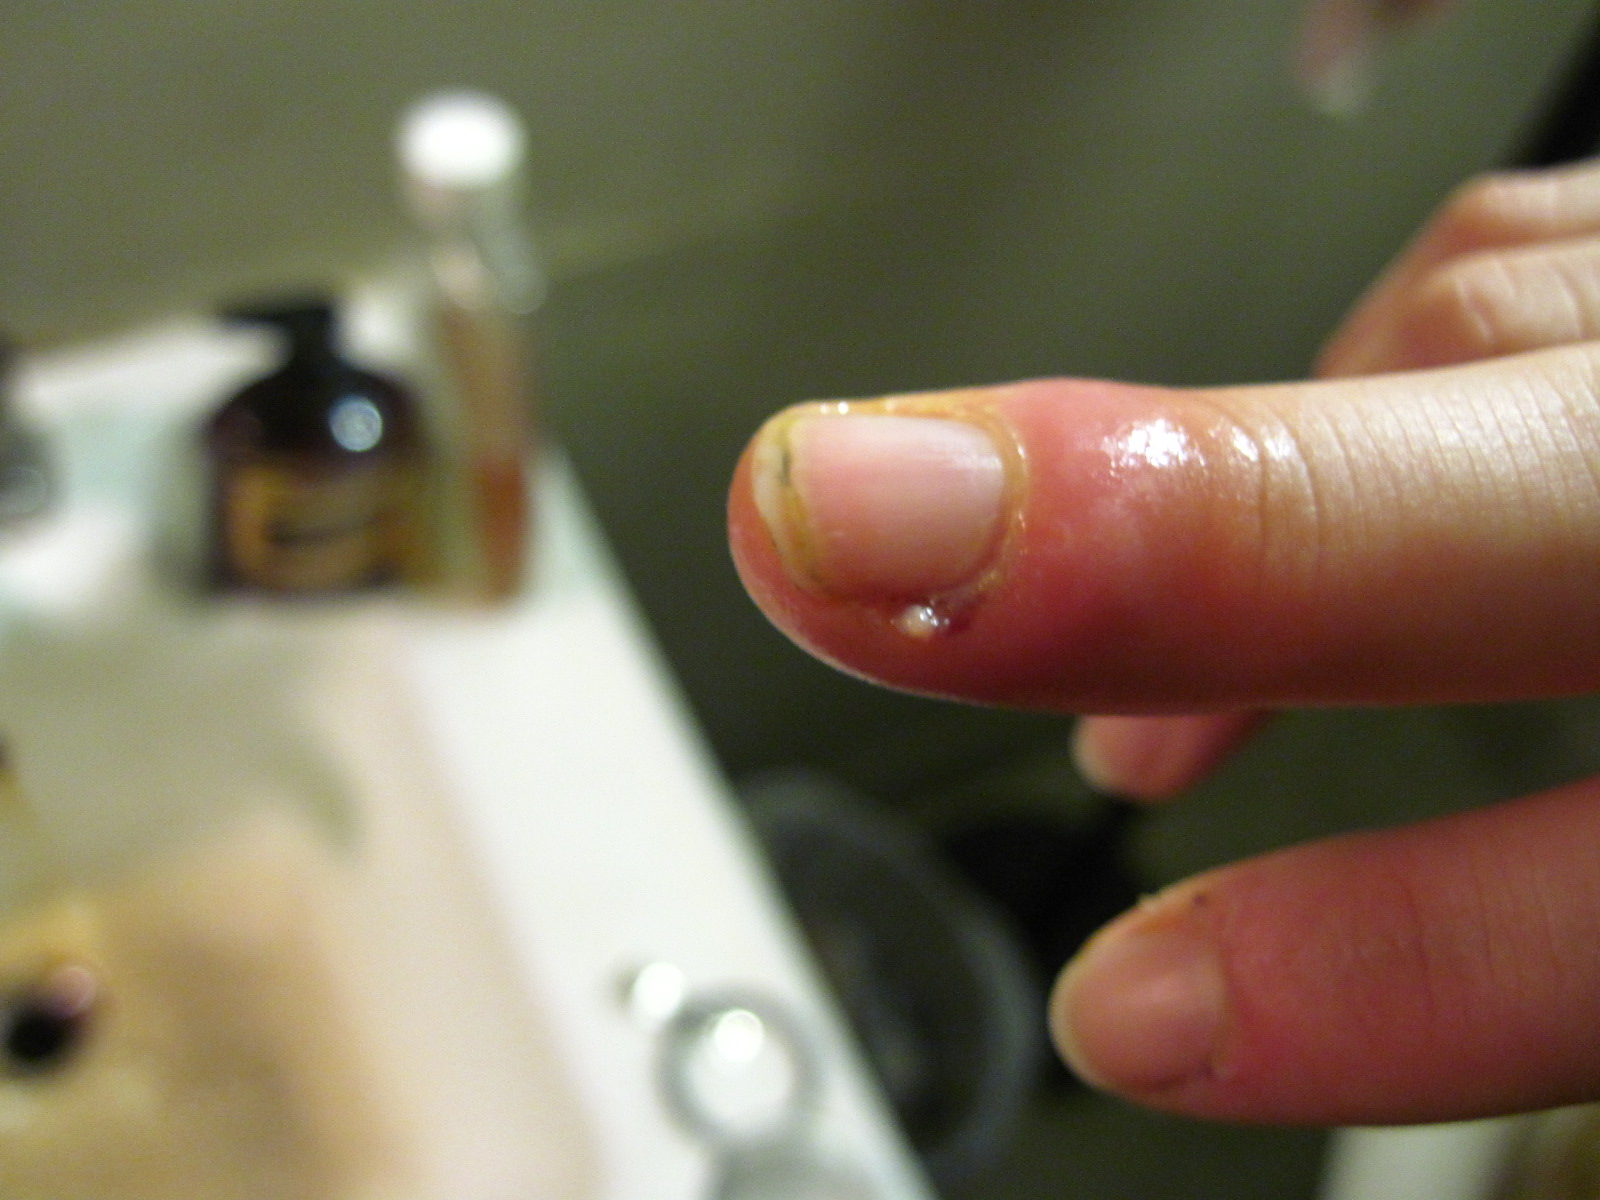 File:Bacterial infection in cuticle.jpg - Wikimedia Commons